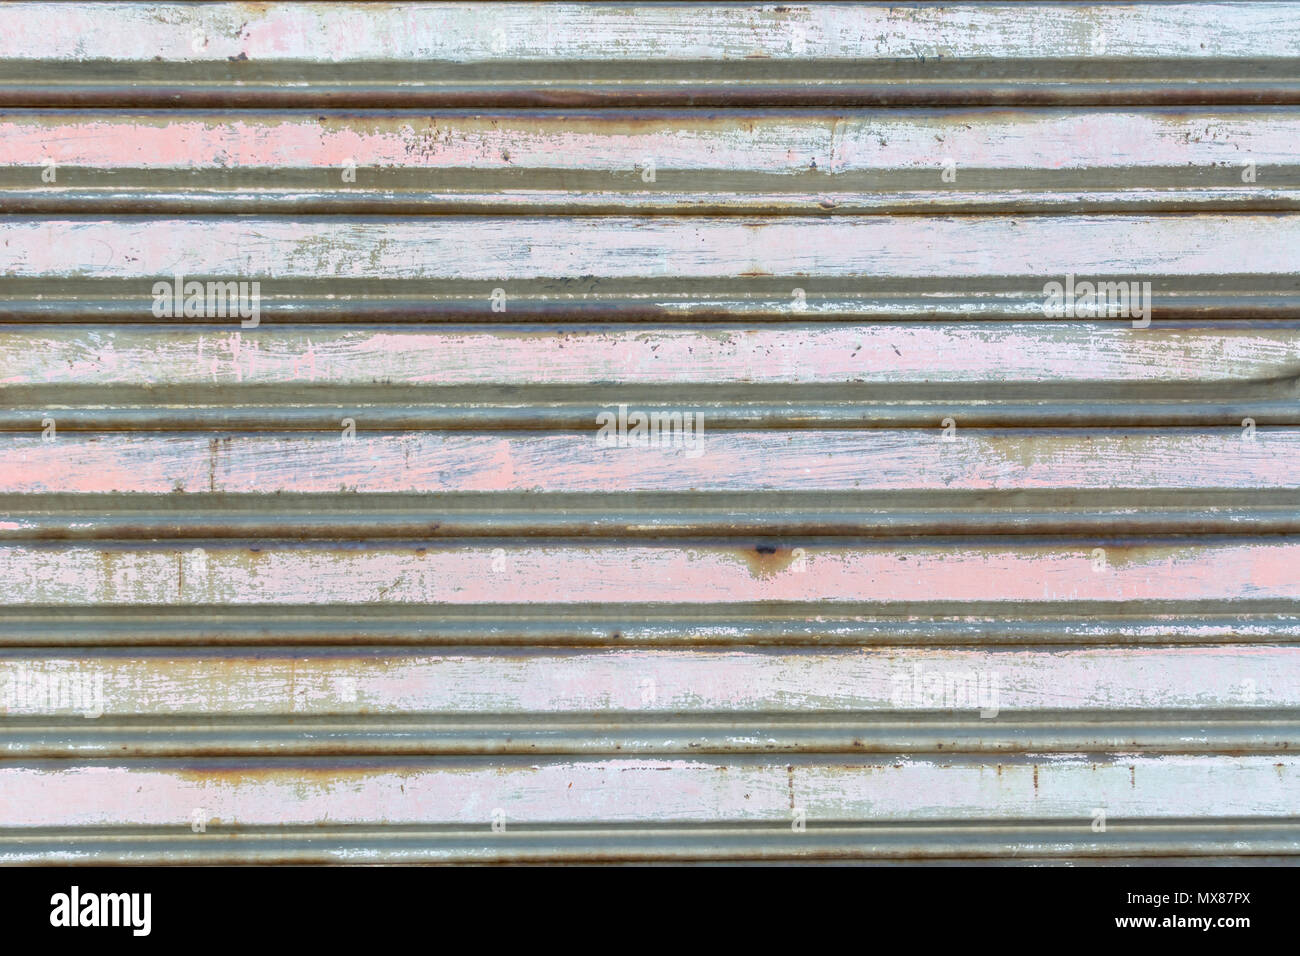 metal fence made of corrugated steel sheet with vertical guides - Stock Image